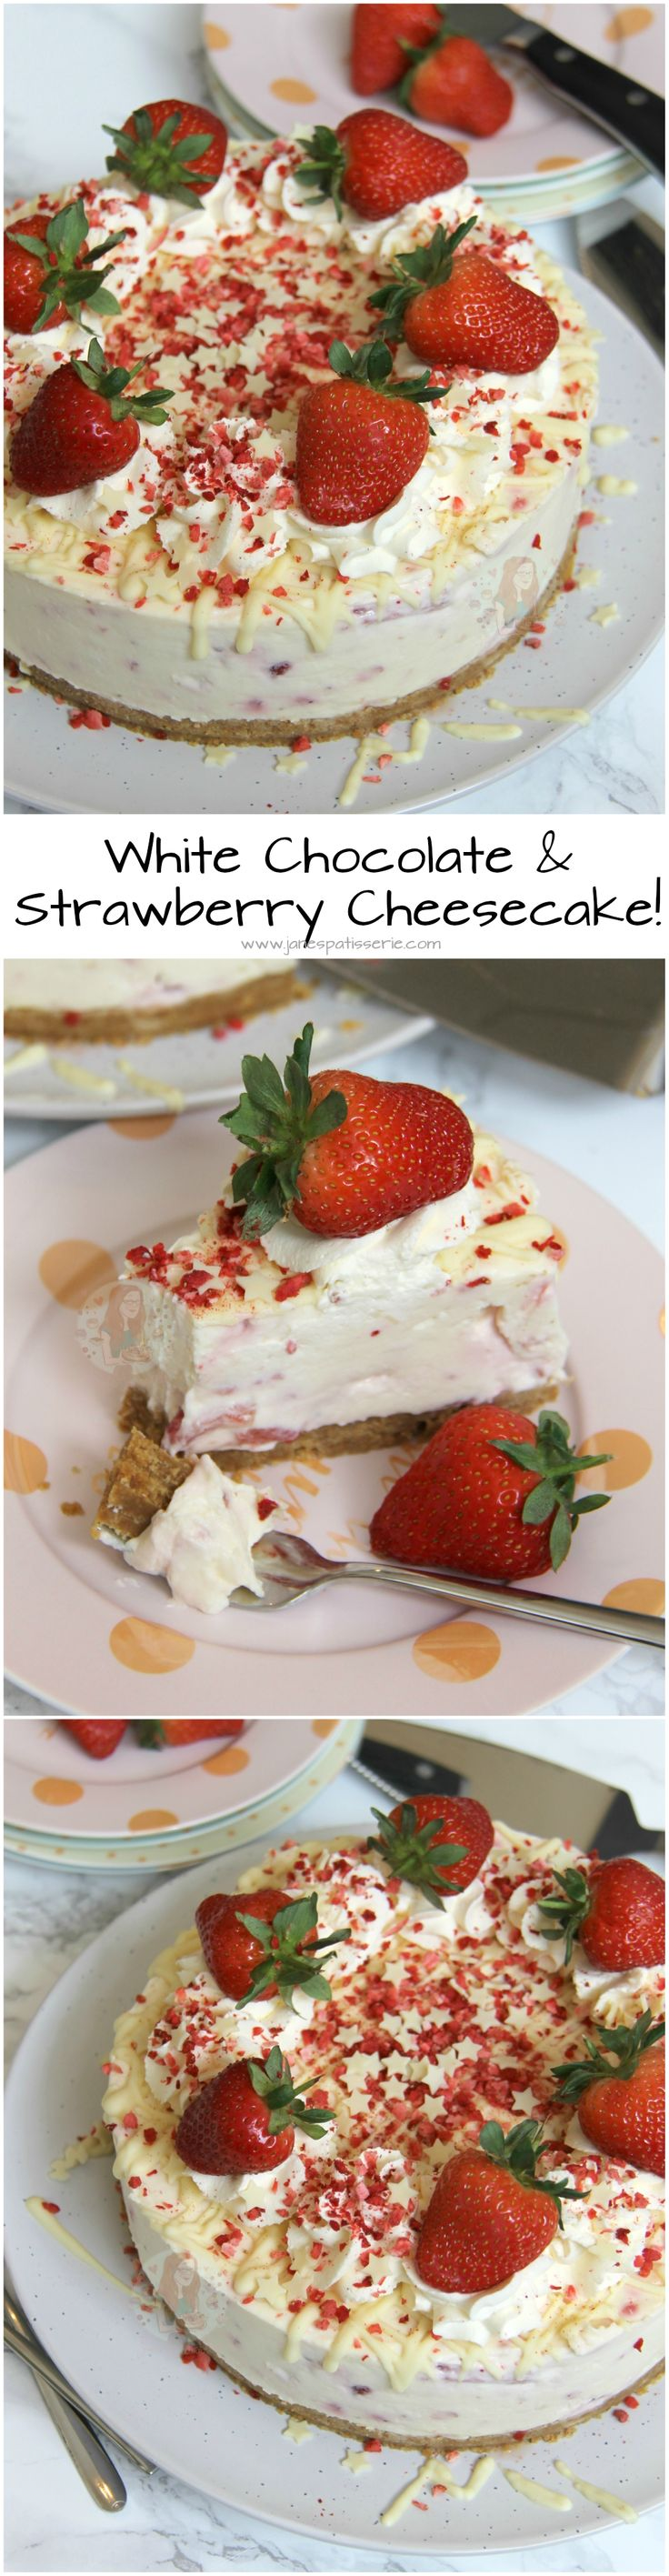 White Chocolate & Strawberry Cheesecake! ❤️ Buttery Biscuit Base, White Chocolate Cheesecake with Strawberry Filling, Whipped Cream, More Chocolate, and even more Strawberry!